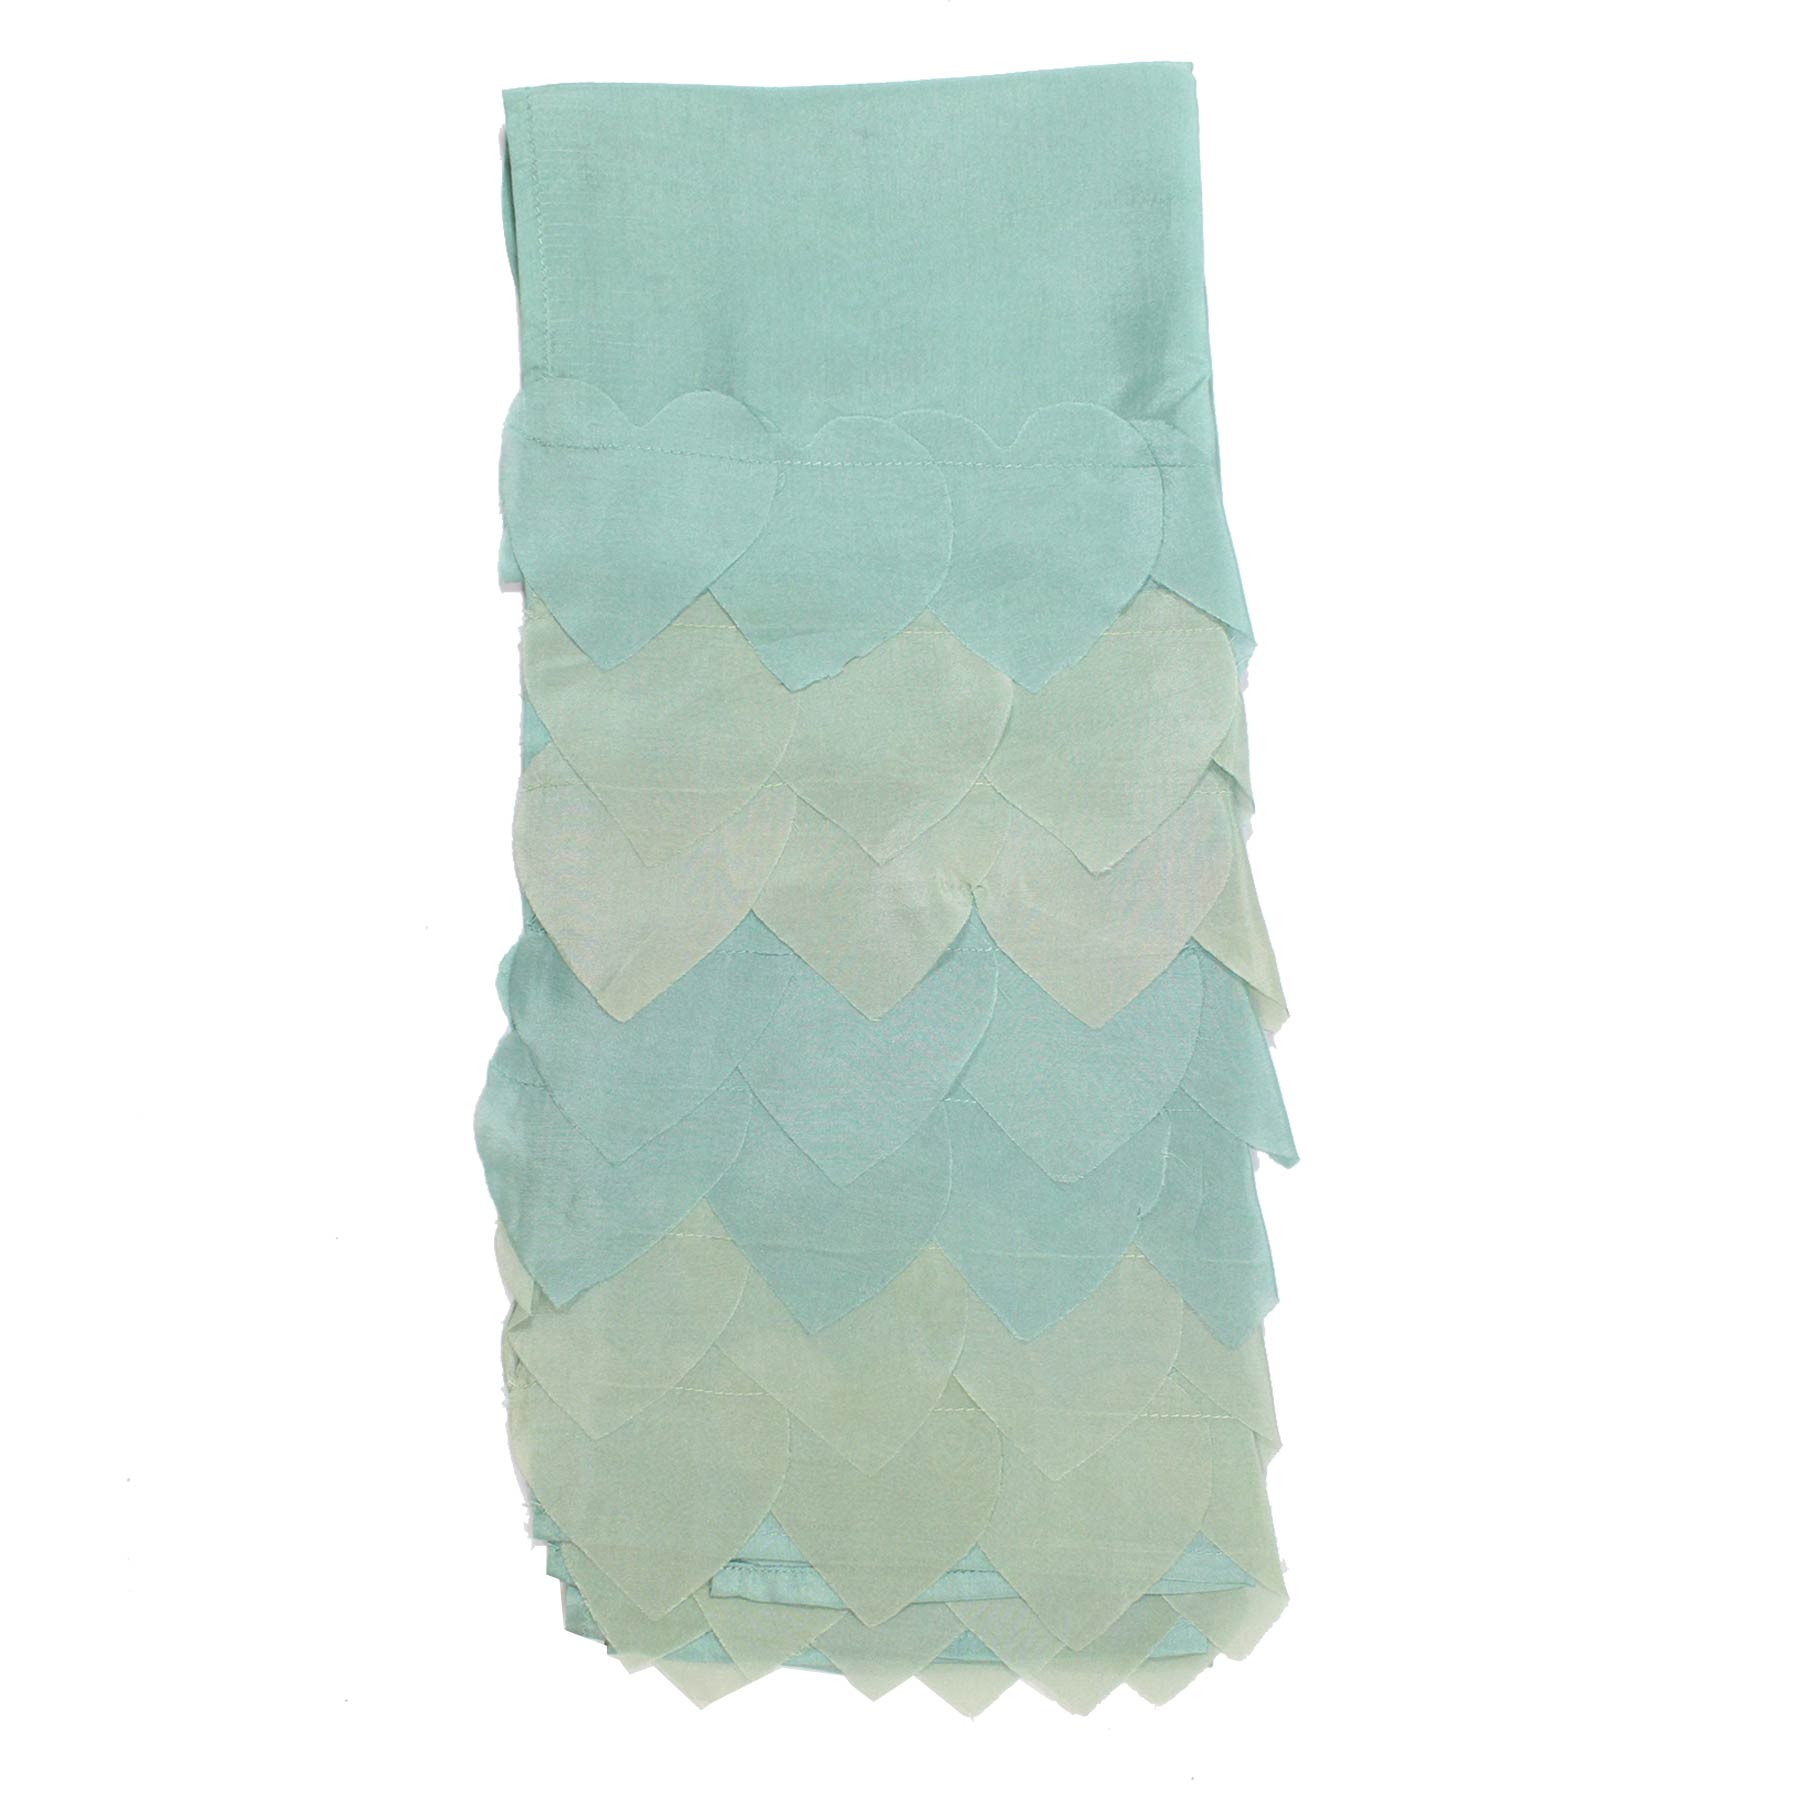 Moschino Silk Scarf Mint Green Seafoam Layered Design